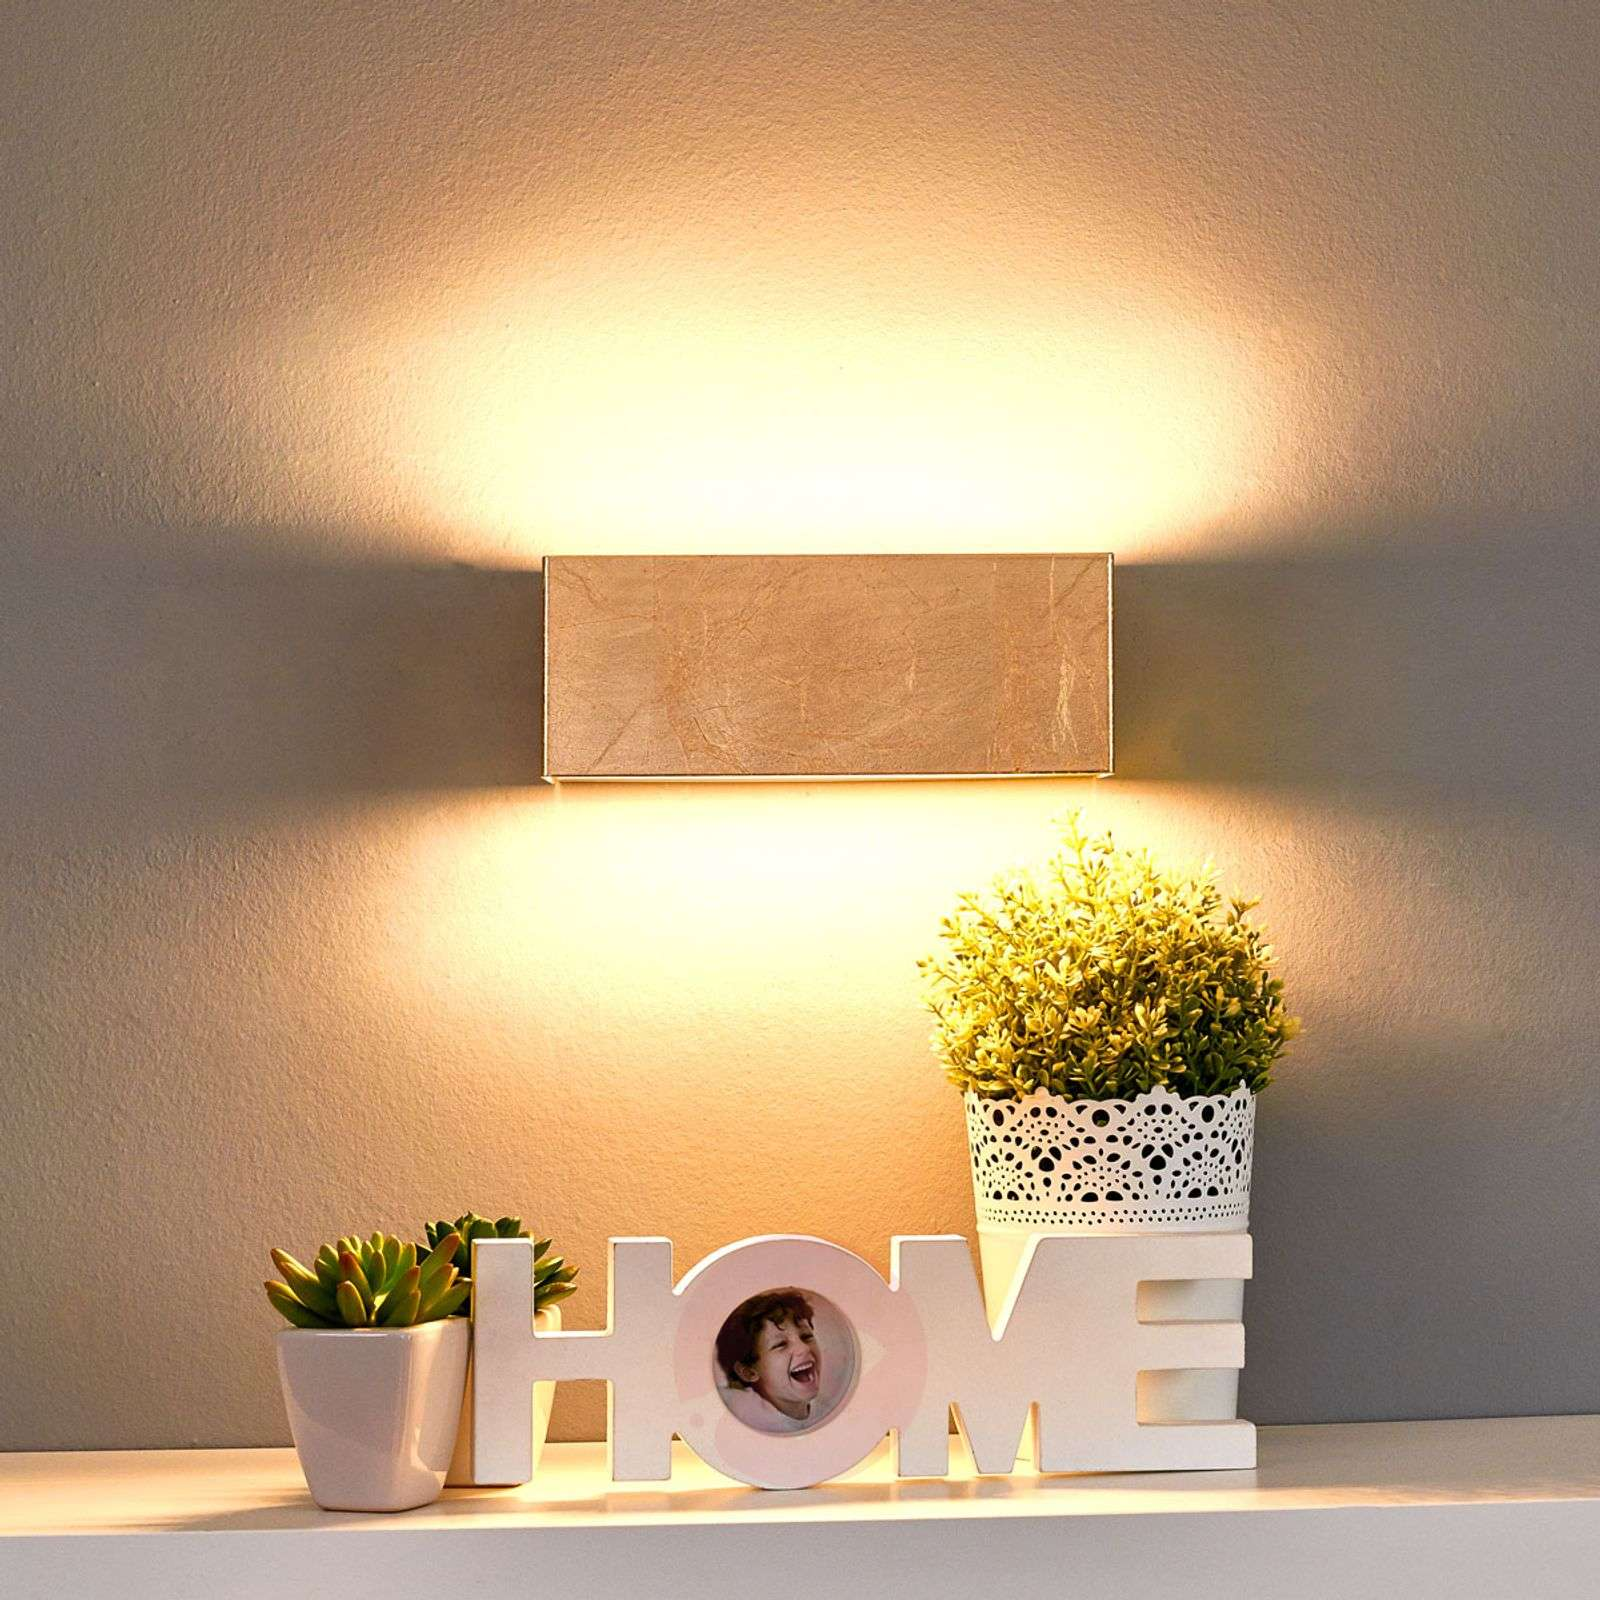 Gold-coloured LED wall lamp Quentin, 23 cm-9625071-03